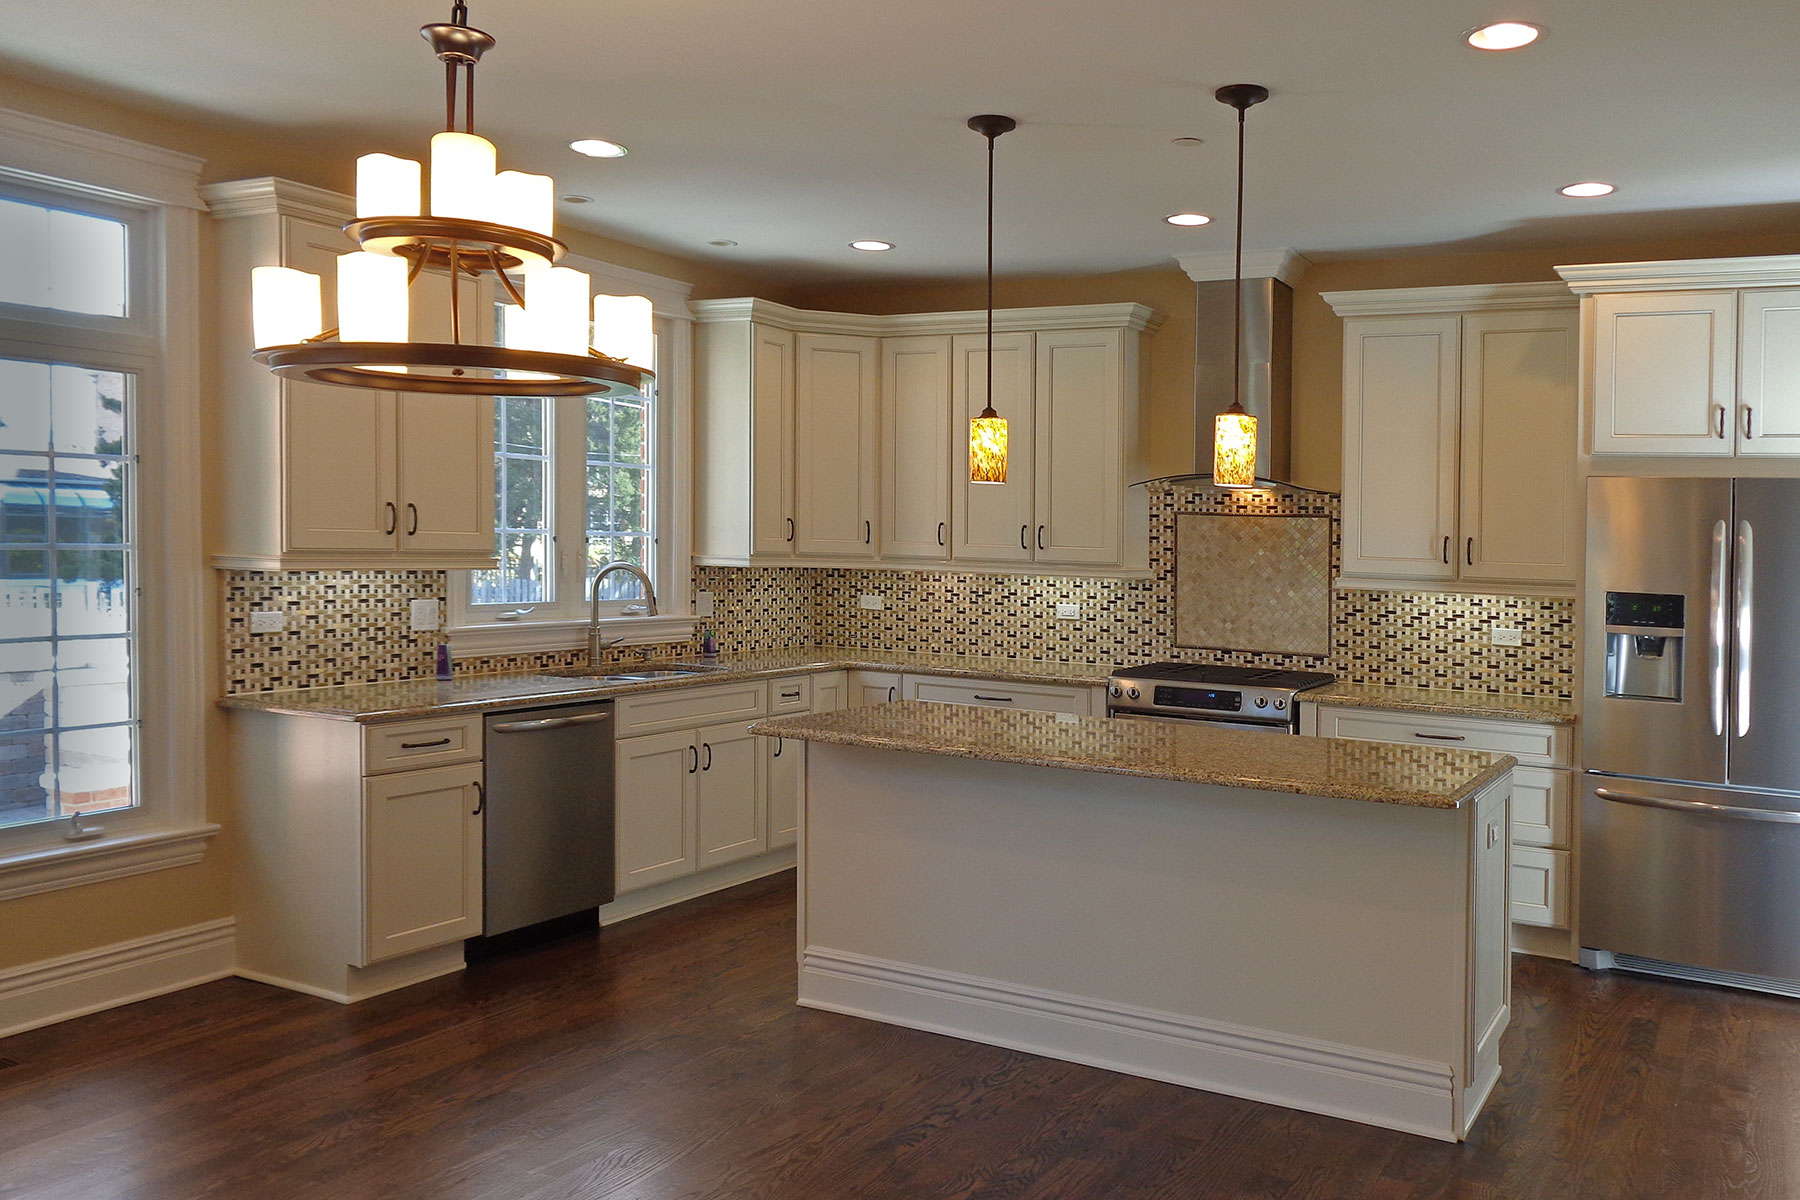 Ddk Kitchen Design Group Glenview Il 7025 Keating Ave Lincolnwood Construction Projects Photo